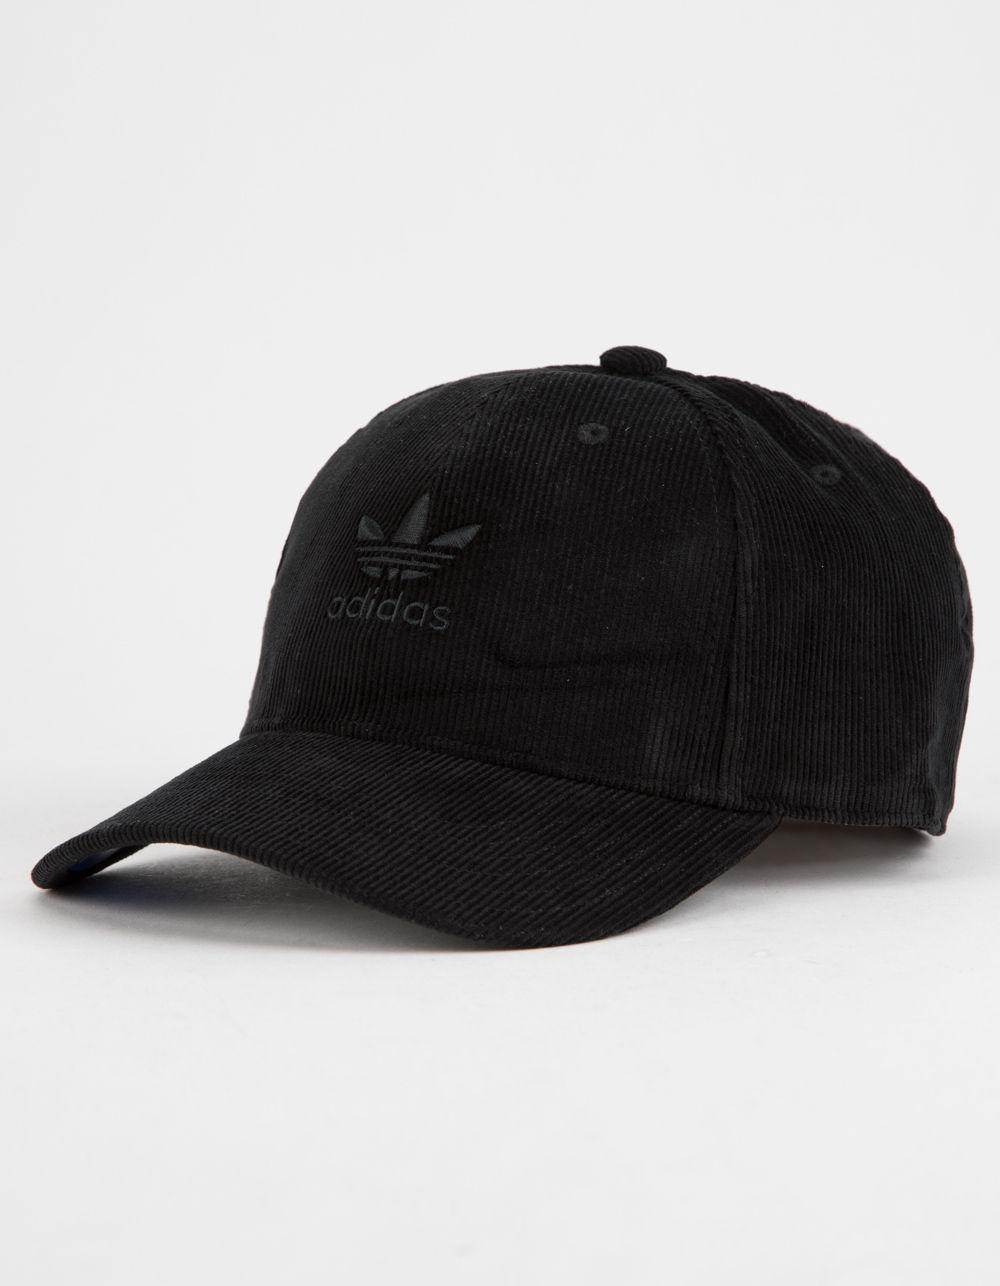 Lyst - adidas Originals Relaxed Corduroy Black Mens Dad Hat in Black ... be23f7c5952